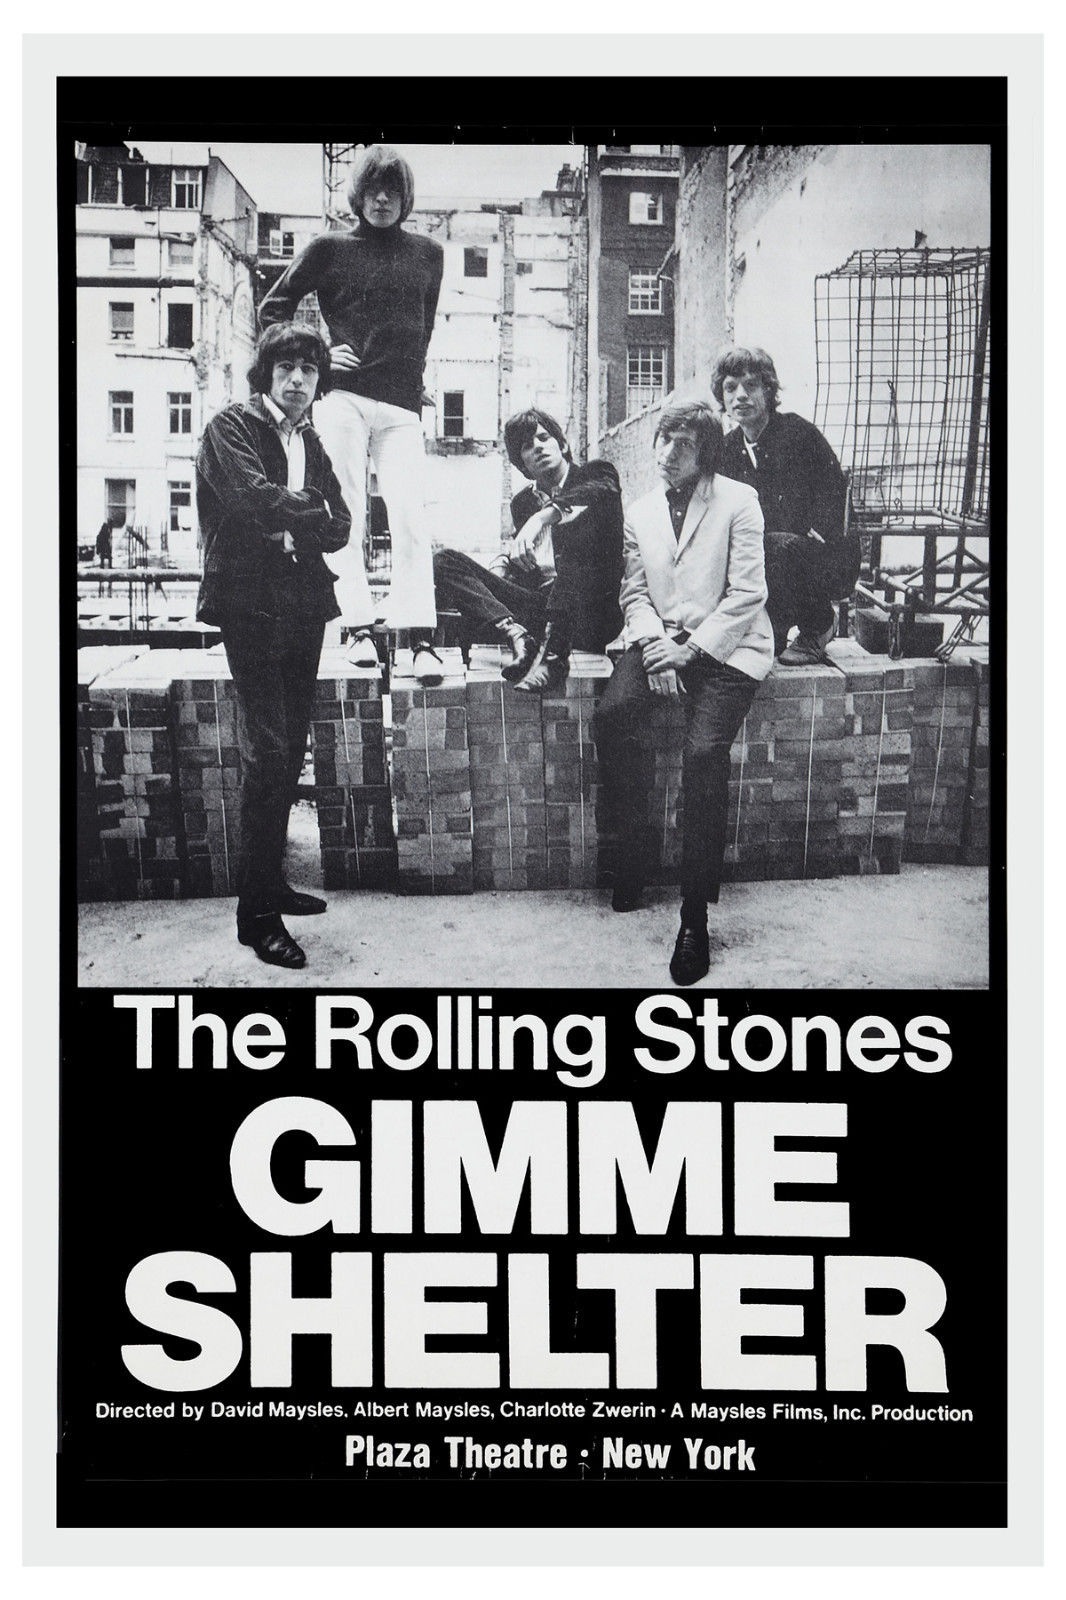 the-rolling-stones-gimme-shelter-plaza-theatre-n-y-poster-1970-18